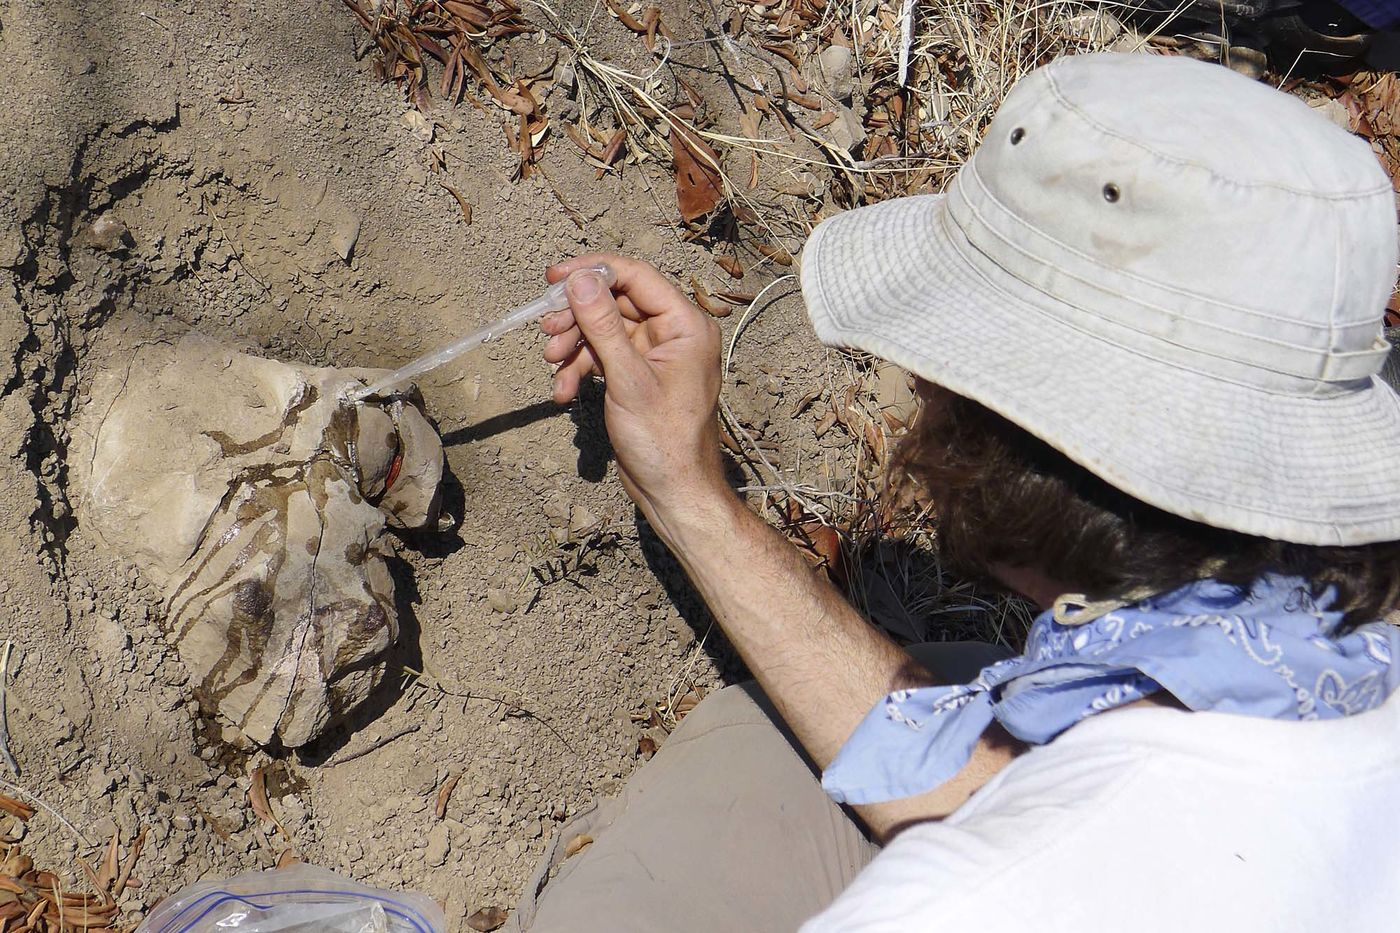 Looking down on a man holding a pipette and applying a liquid to a fossil dicynodont skull that is still partially buried in the ground.